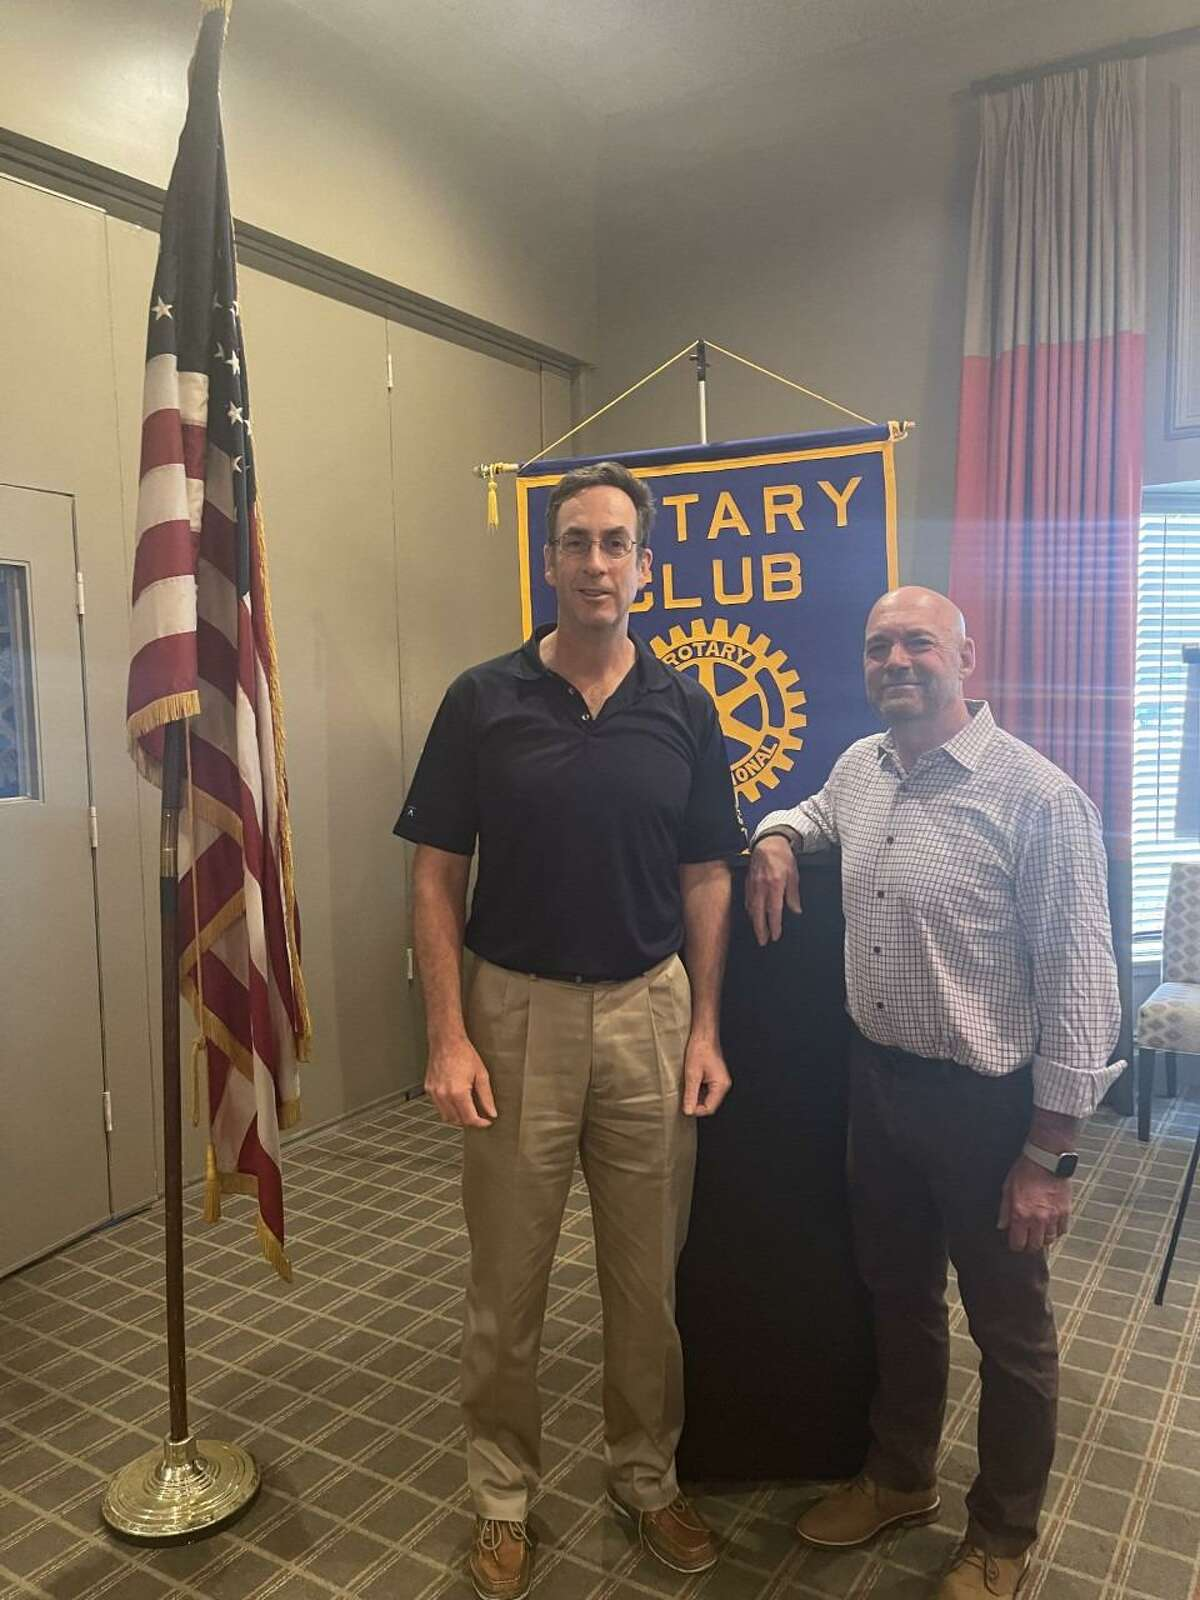 Business Blueprint Company Owner Duane C. Barney recently spoke to the members of the Rotary Club of Danbury at one of their lunch meetings at 12:15 p.m., on Wednesday, July 21, at the Ethan Allen Inn in Danbury, going over elements to succeed in business, stressing the importance of running an organization, and strategies to help keep a business stable as it grows. Pictured to the left of Barney in the photo is: The President of the Rotary Club of Danbury, Frank Scahill. The Rotary Club is looking for people, who would like to give back to their community, and who have two to four hours a month that they can spare. Visit the non profit organization's website at, danburyrotary.org, to learn more. The Inn is located at 21 Lake Avenue Extension in the city.